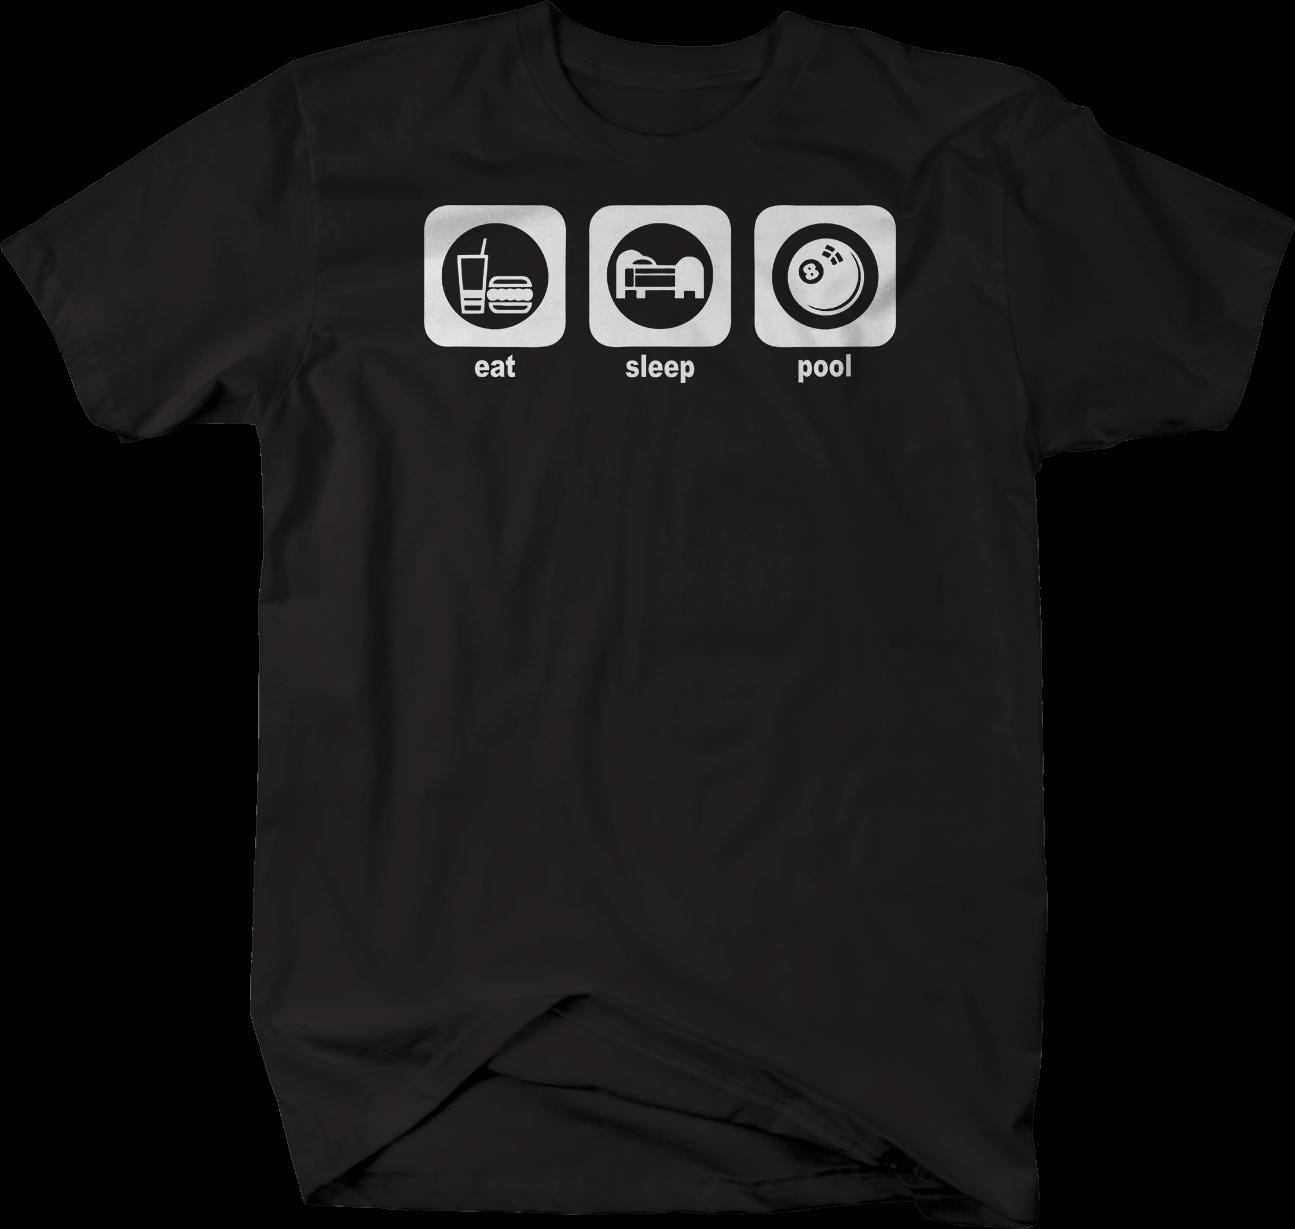 4e0482d4ee Eat Sleep Pool Billiards Tshirt Funny Unisex Tee Awesome Cheap T Shirts  Online Shopping For T Shirt From Stshirt, $12.96| DHgate.Com